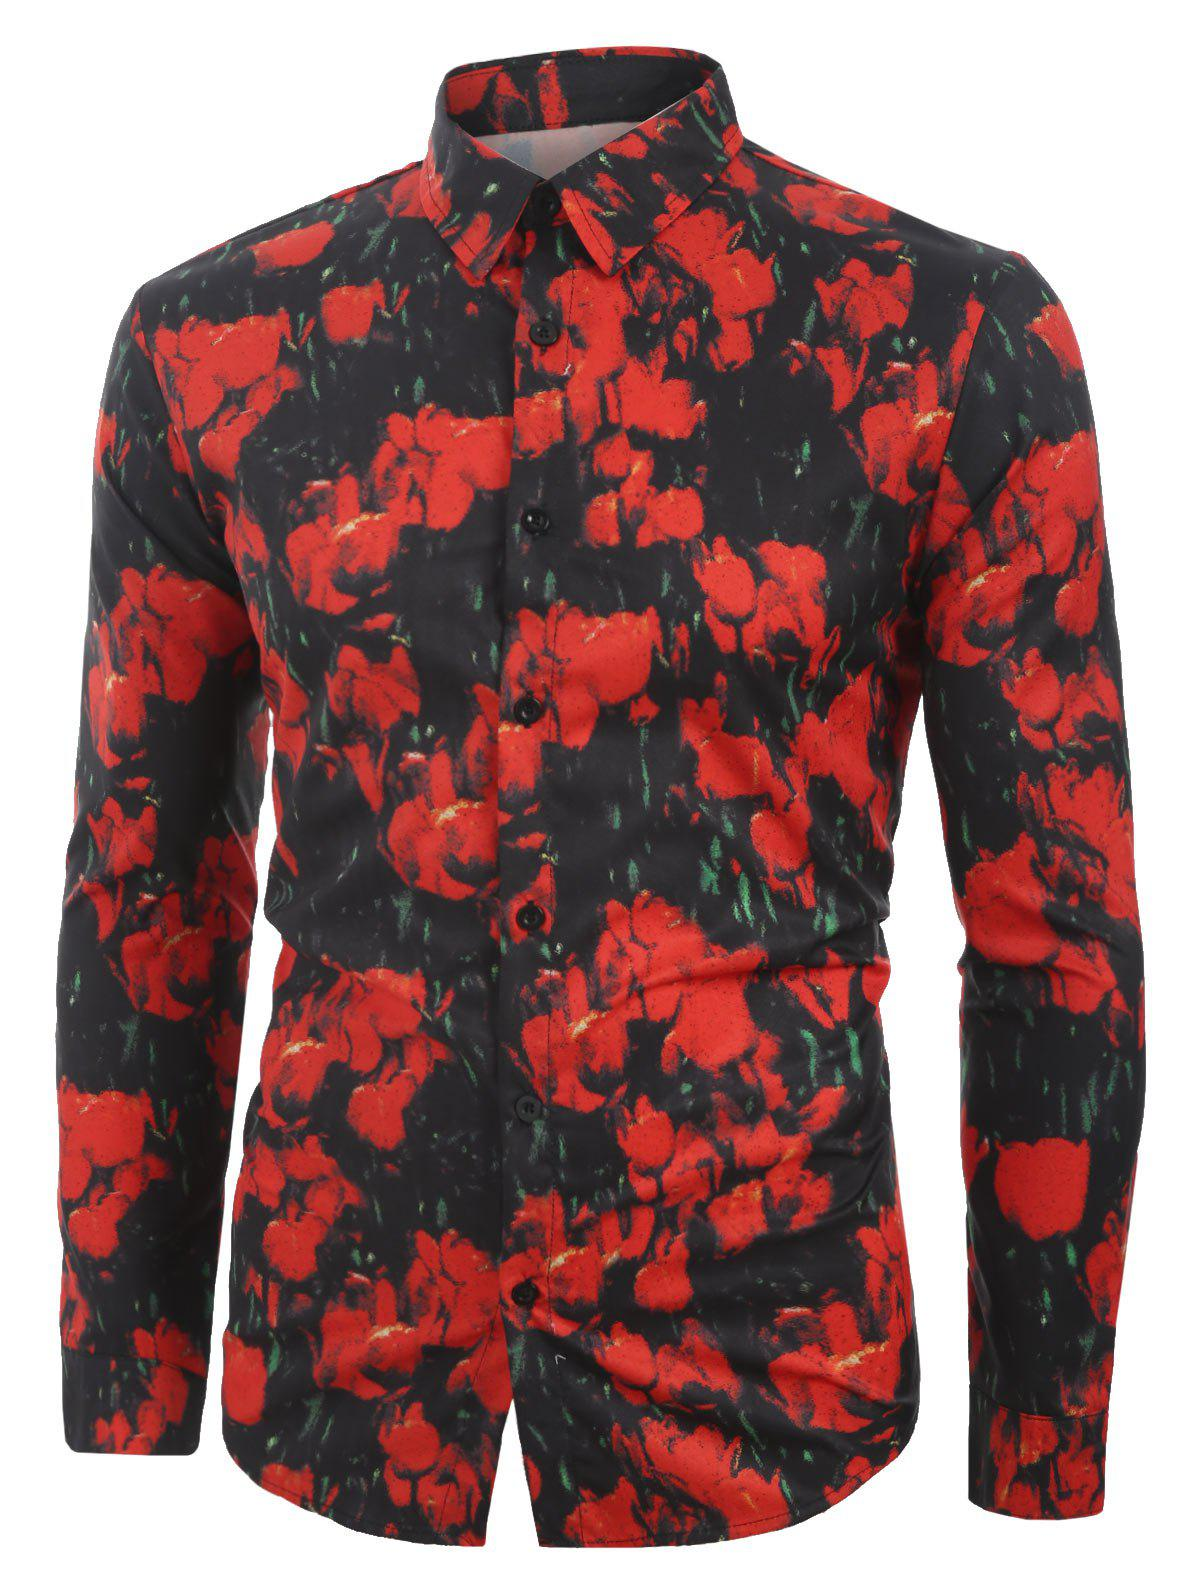 Floral Printed Casual Button Long Sleeves Shirt by Rosegal